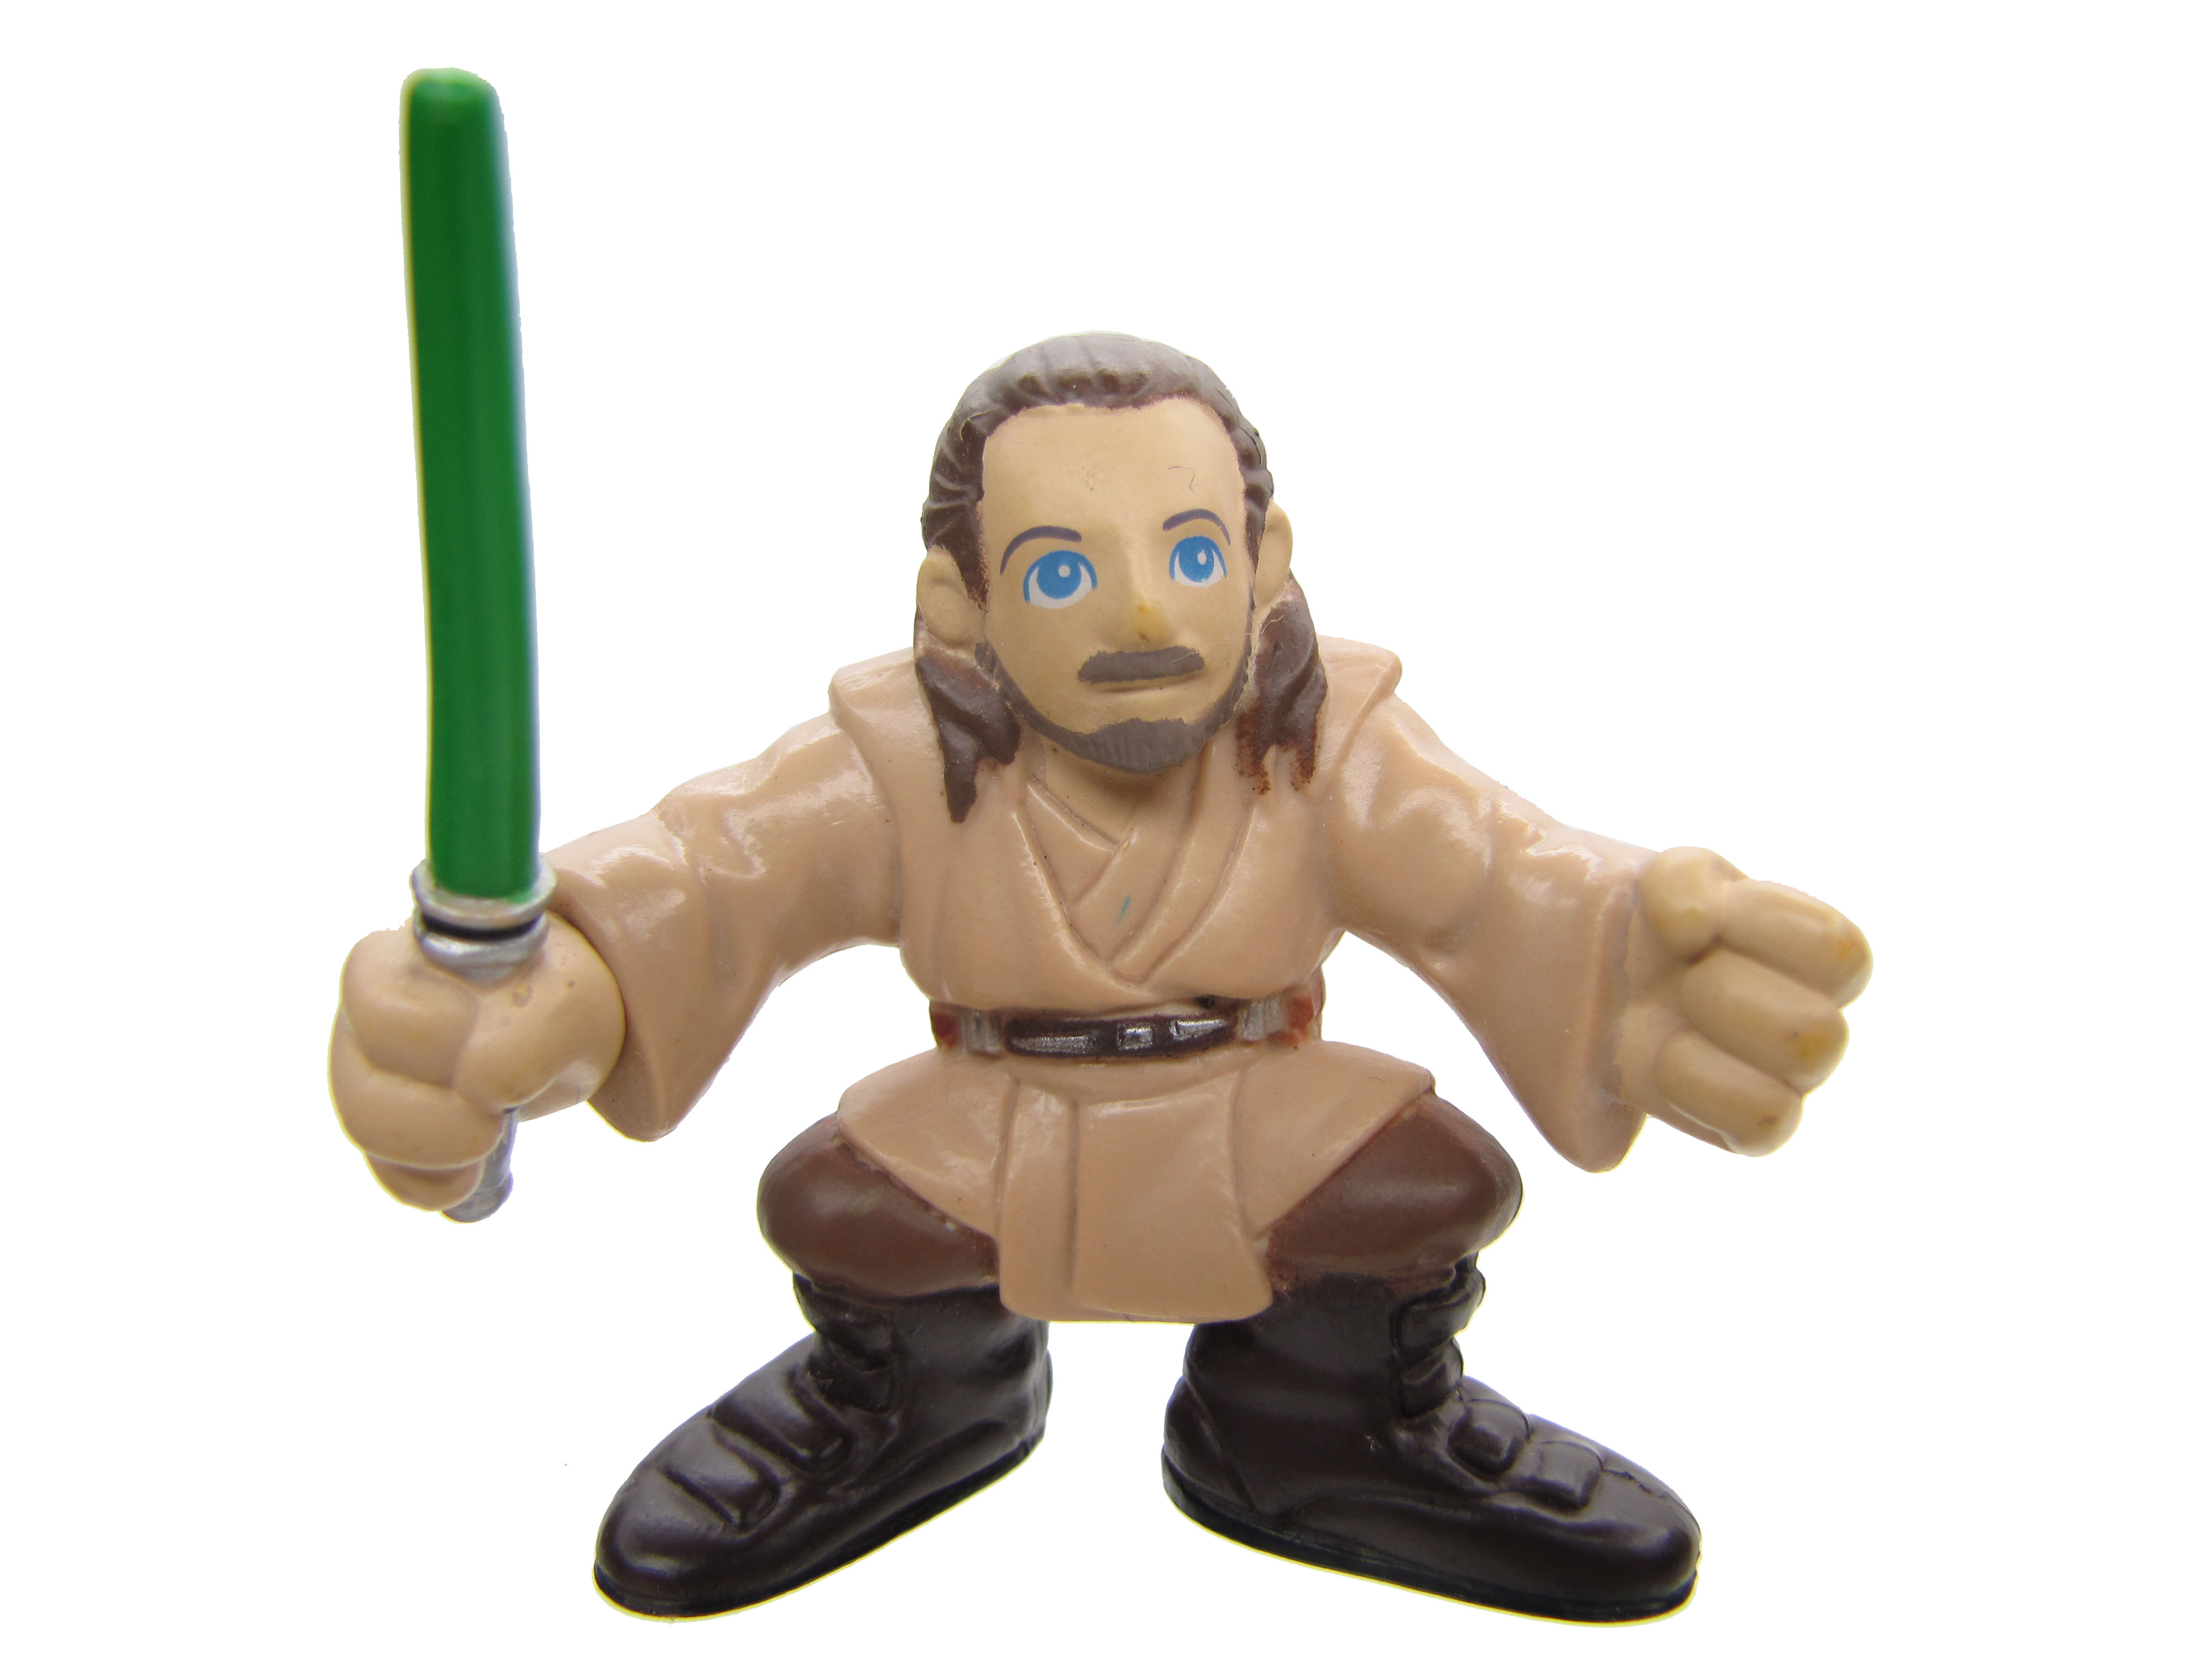 Star Wars Galactic Heroes BATTLE OF NABOO QUI GON JINN Complete